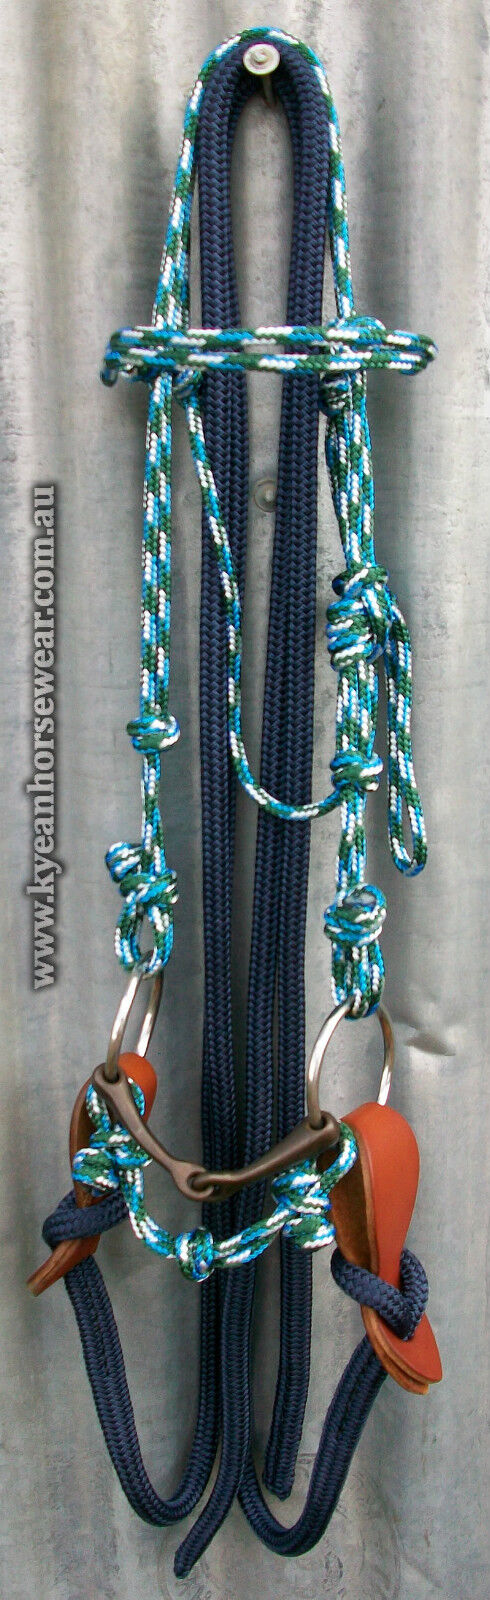 COMPLETE ROPE BRIDLE STRAP and REINS,BIT,CHIN STRAP BRIDLE - Professionally Made - 51225d